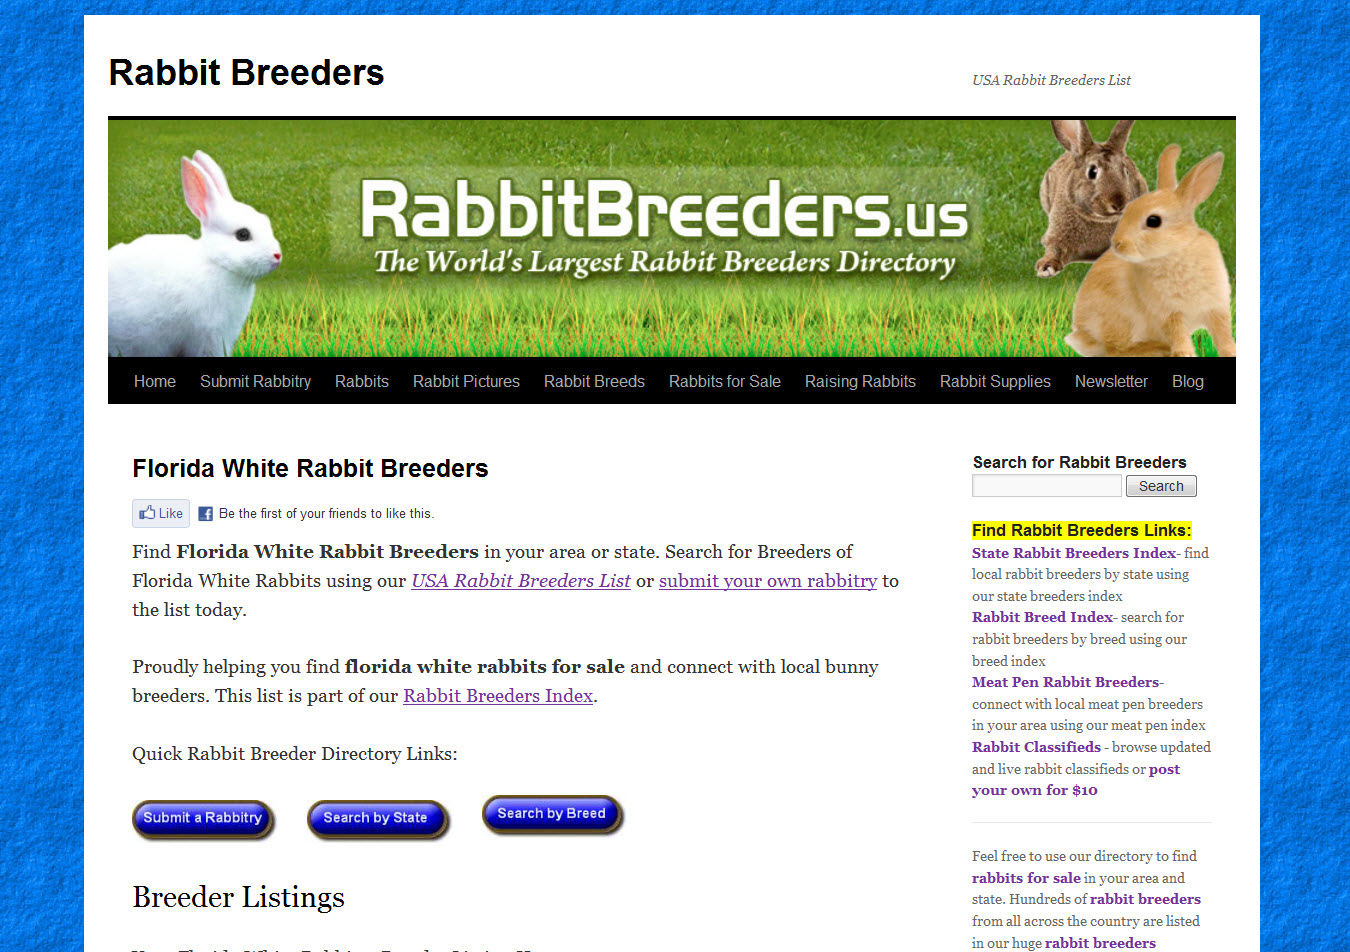 Florida White Rabbits for Sale